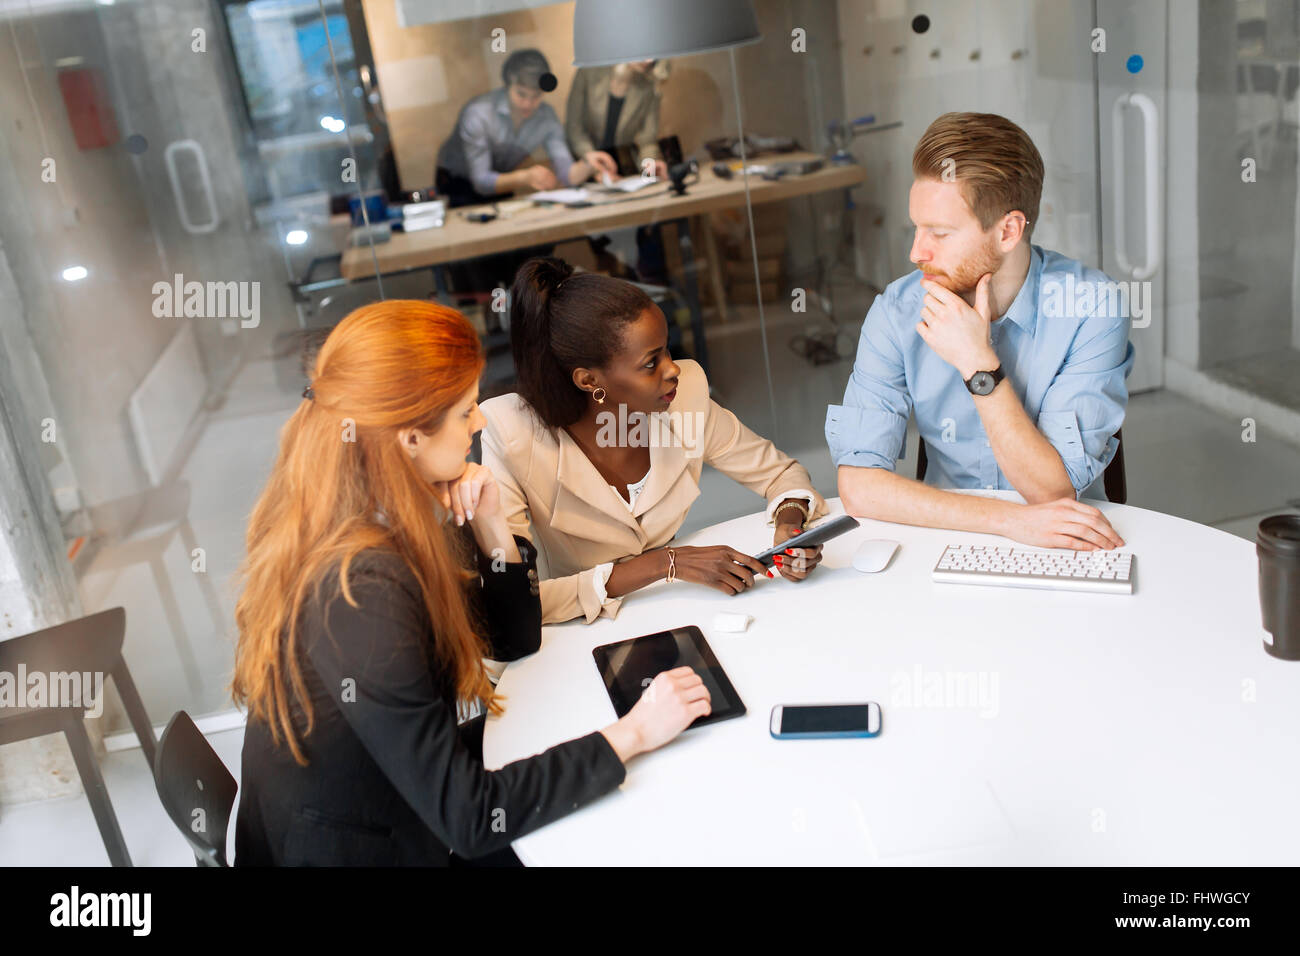 Business people meeting at  round table and brainstorming - Stock Image